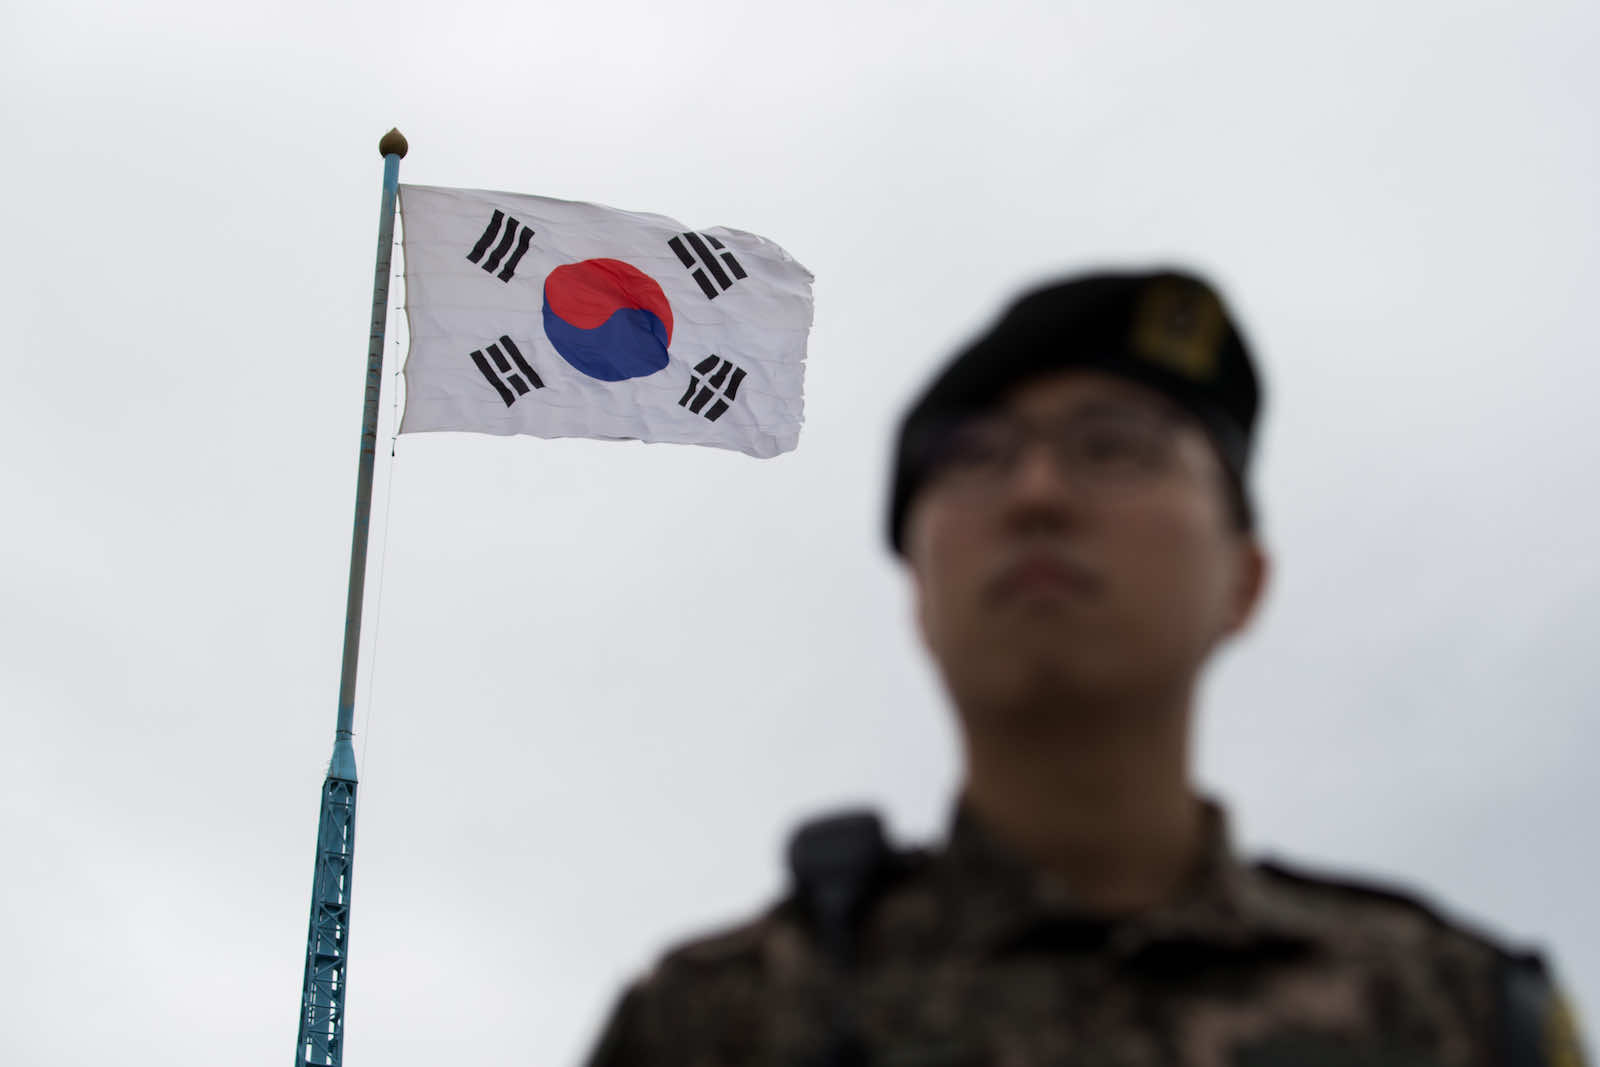 Daeseong-dong village in the Demilitarized Zone, Paju, South Korea (SeongJoon Cho/Bloomberg via Getty Images)